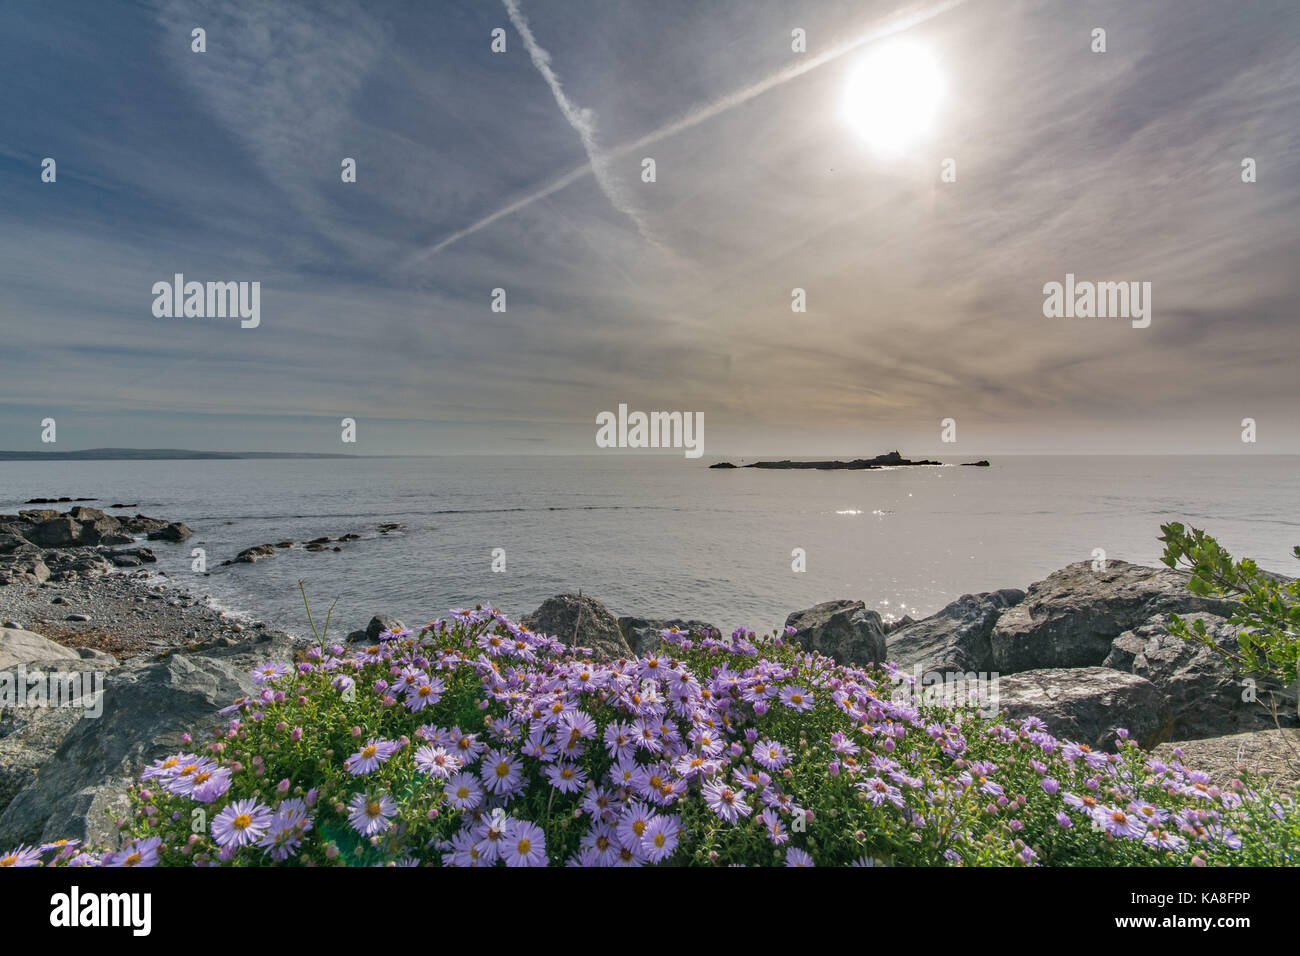 Michaelmas daisies in bloom against a backdrop of the sea at Mousehole in Cornwall. Stock Photo